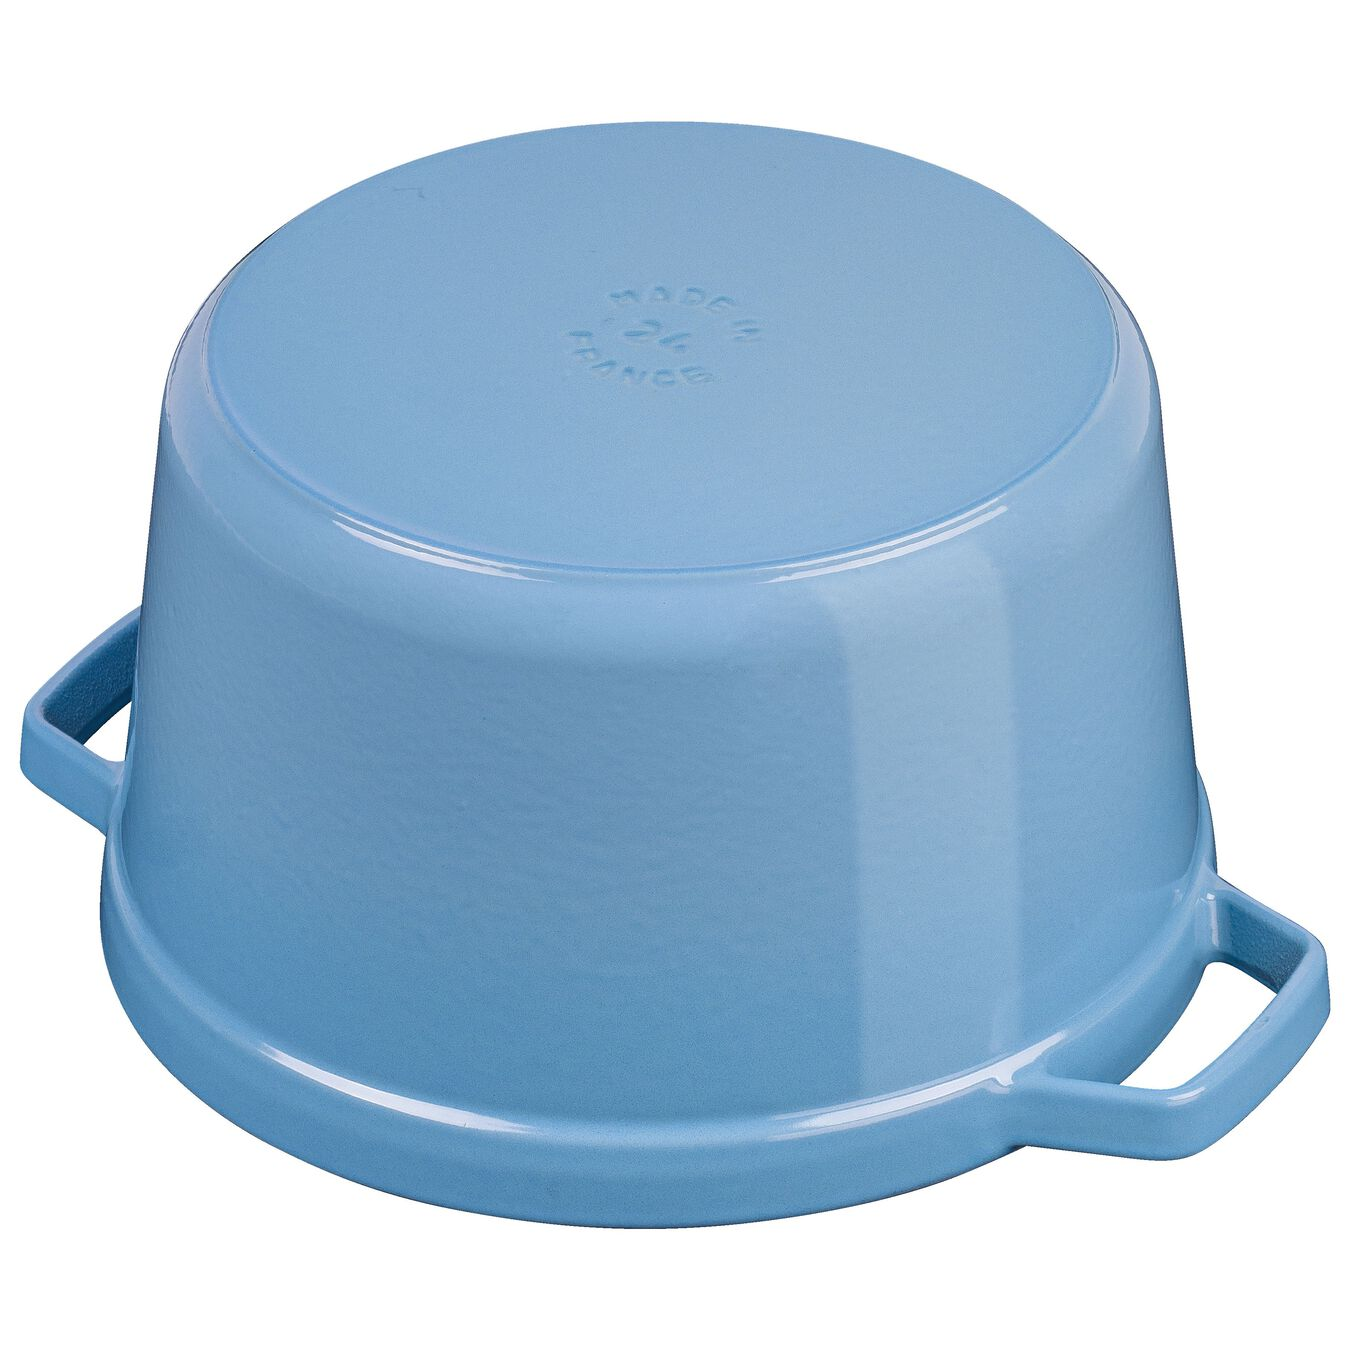 4.8 l round Tall cocotte, ice-blue,,large 4